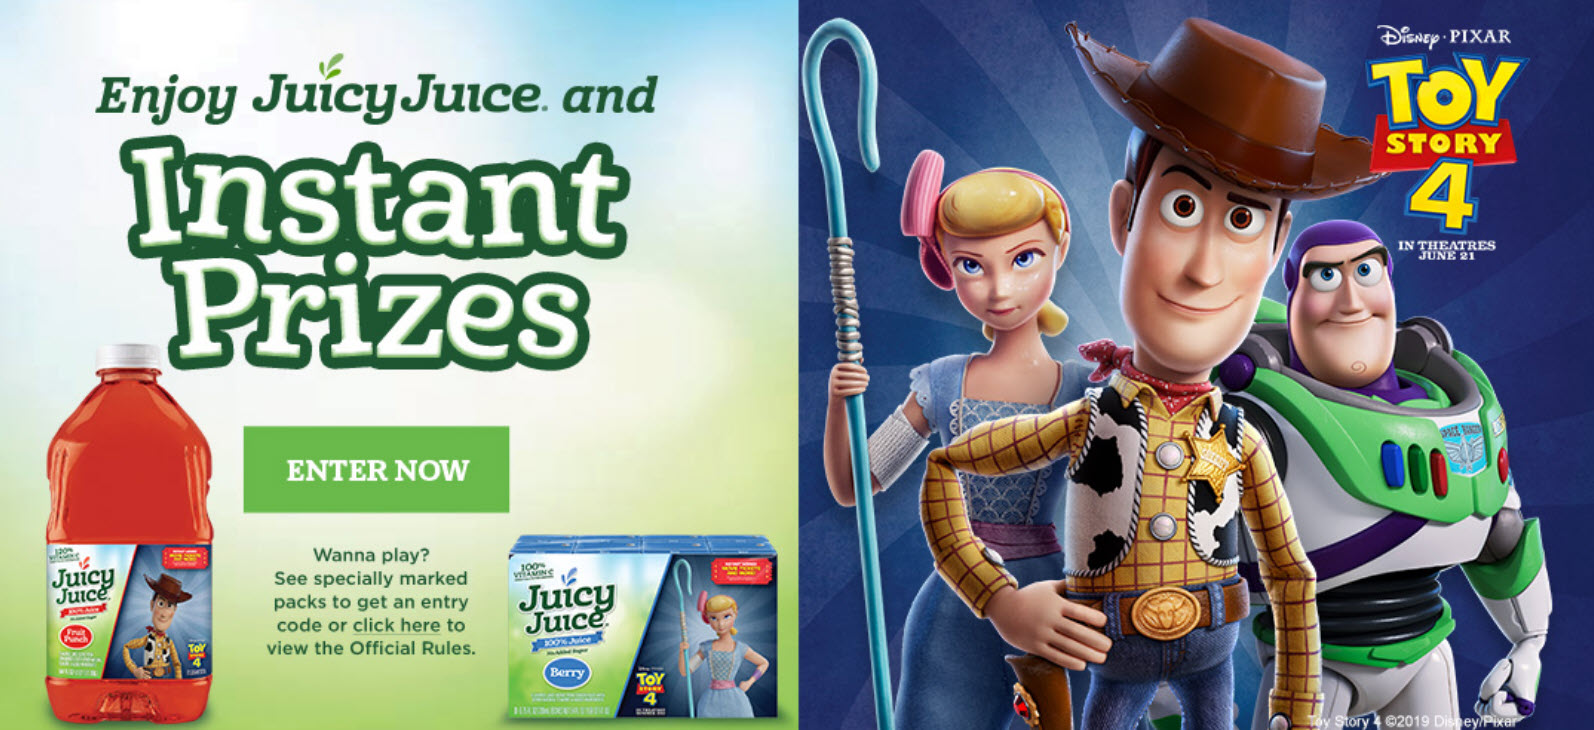 Juicy Juice is giving away over 12 million prizes in their new instant win game. Grab your Juice Juice game code and play daily for your chance to win free movie tickets, Mattel Toy Story 4 Toys, activity packs and free Juice Juice coupons